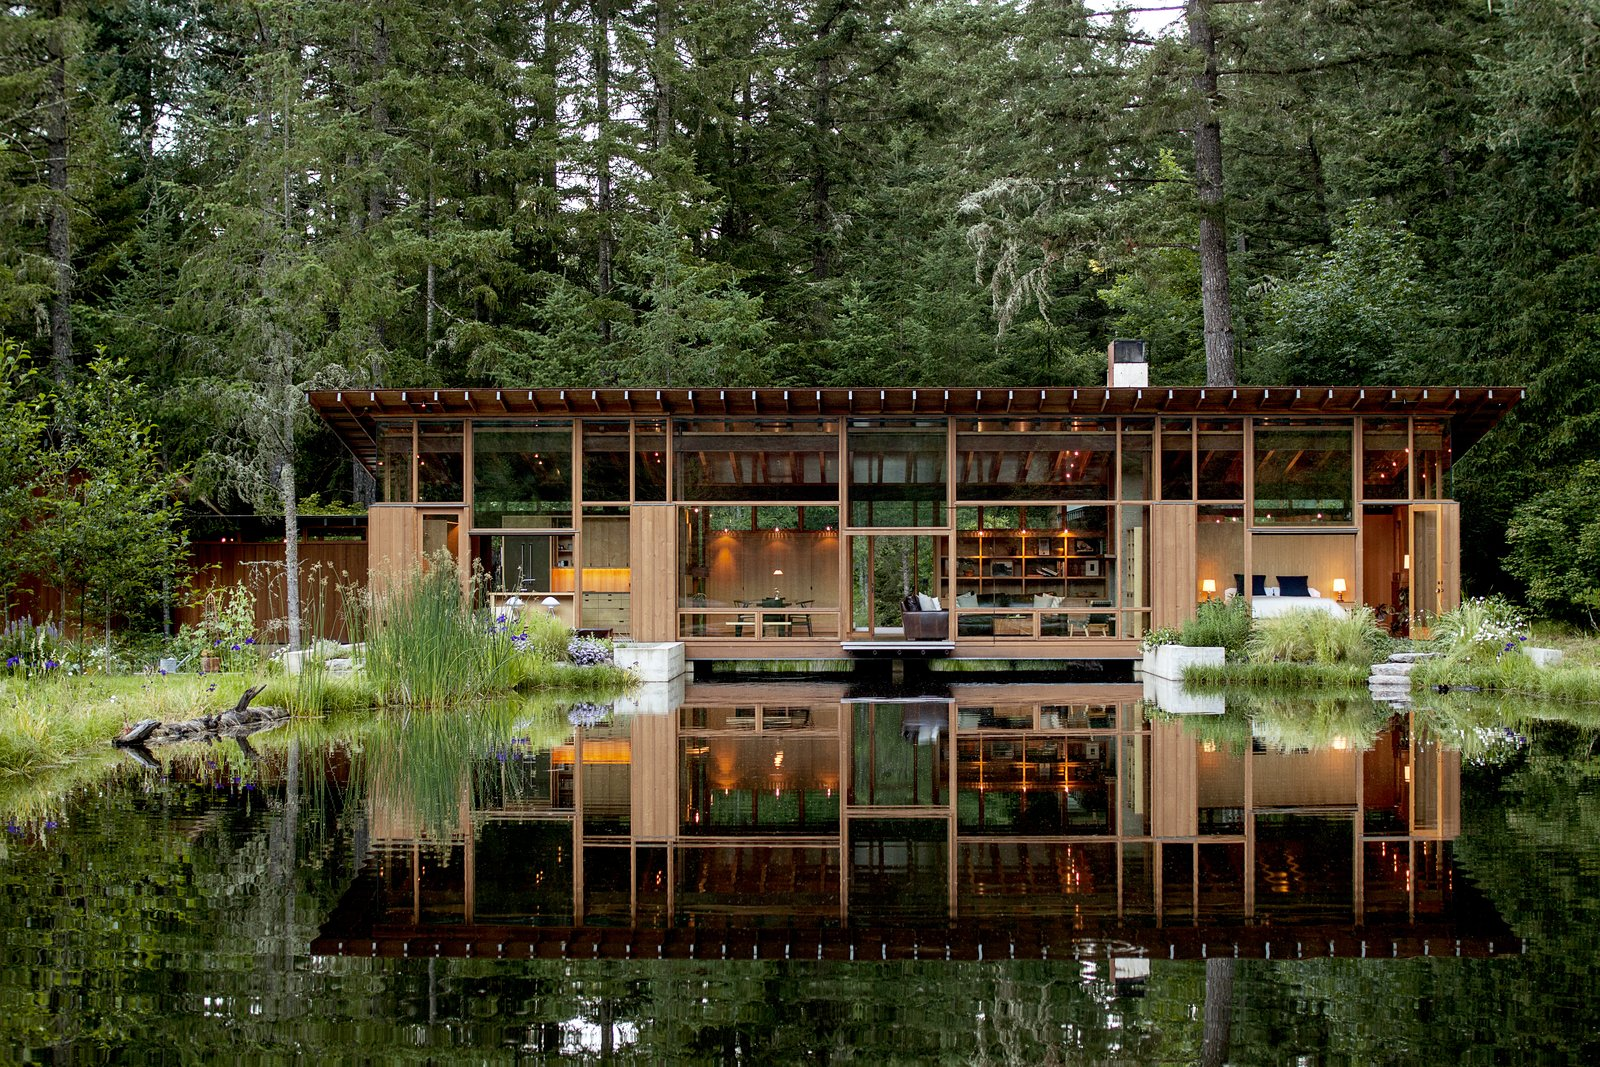 Exterior and House Building Type Newberg Residence  Best Photos from 16 Architects on Regional Style and What American Design Means to Them